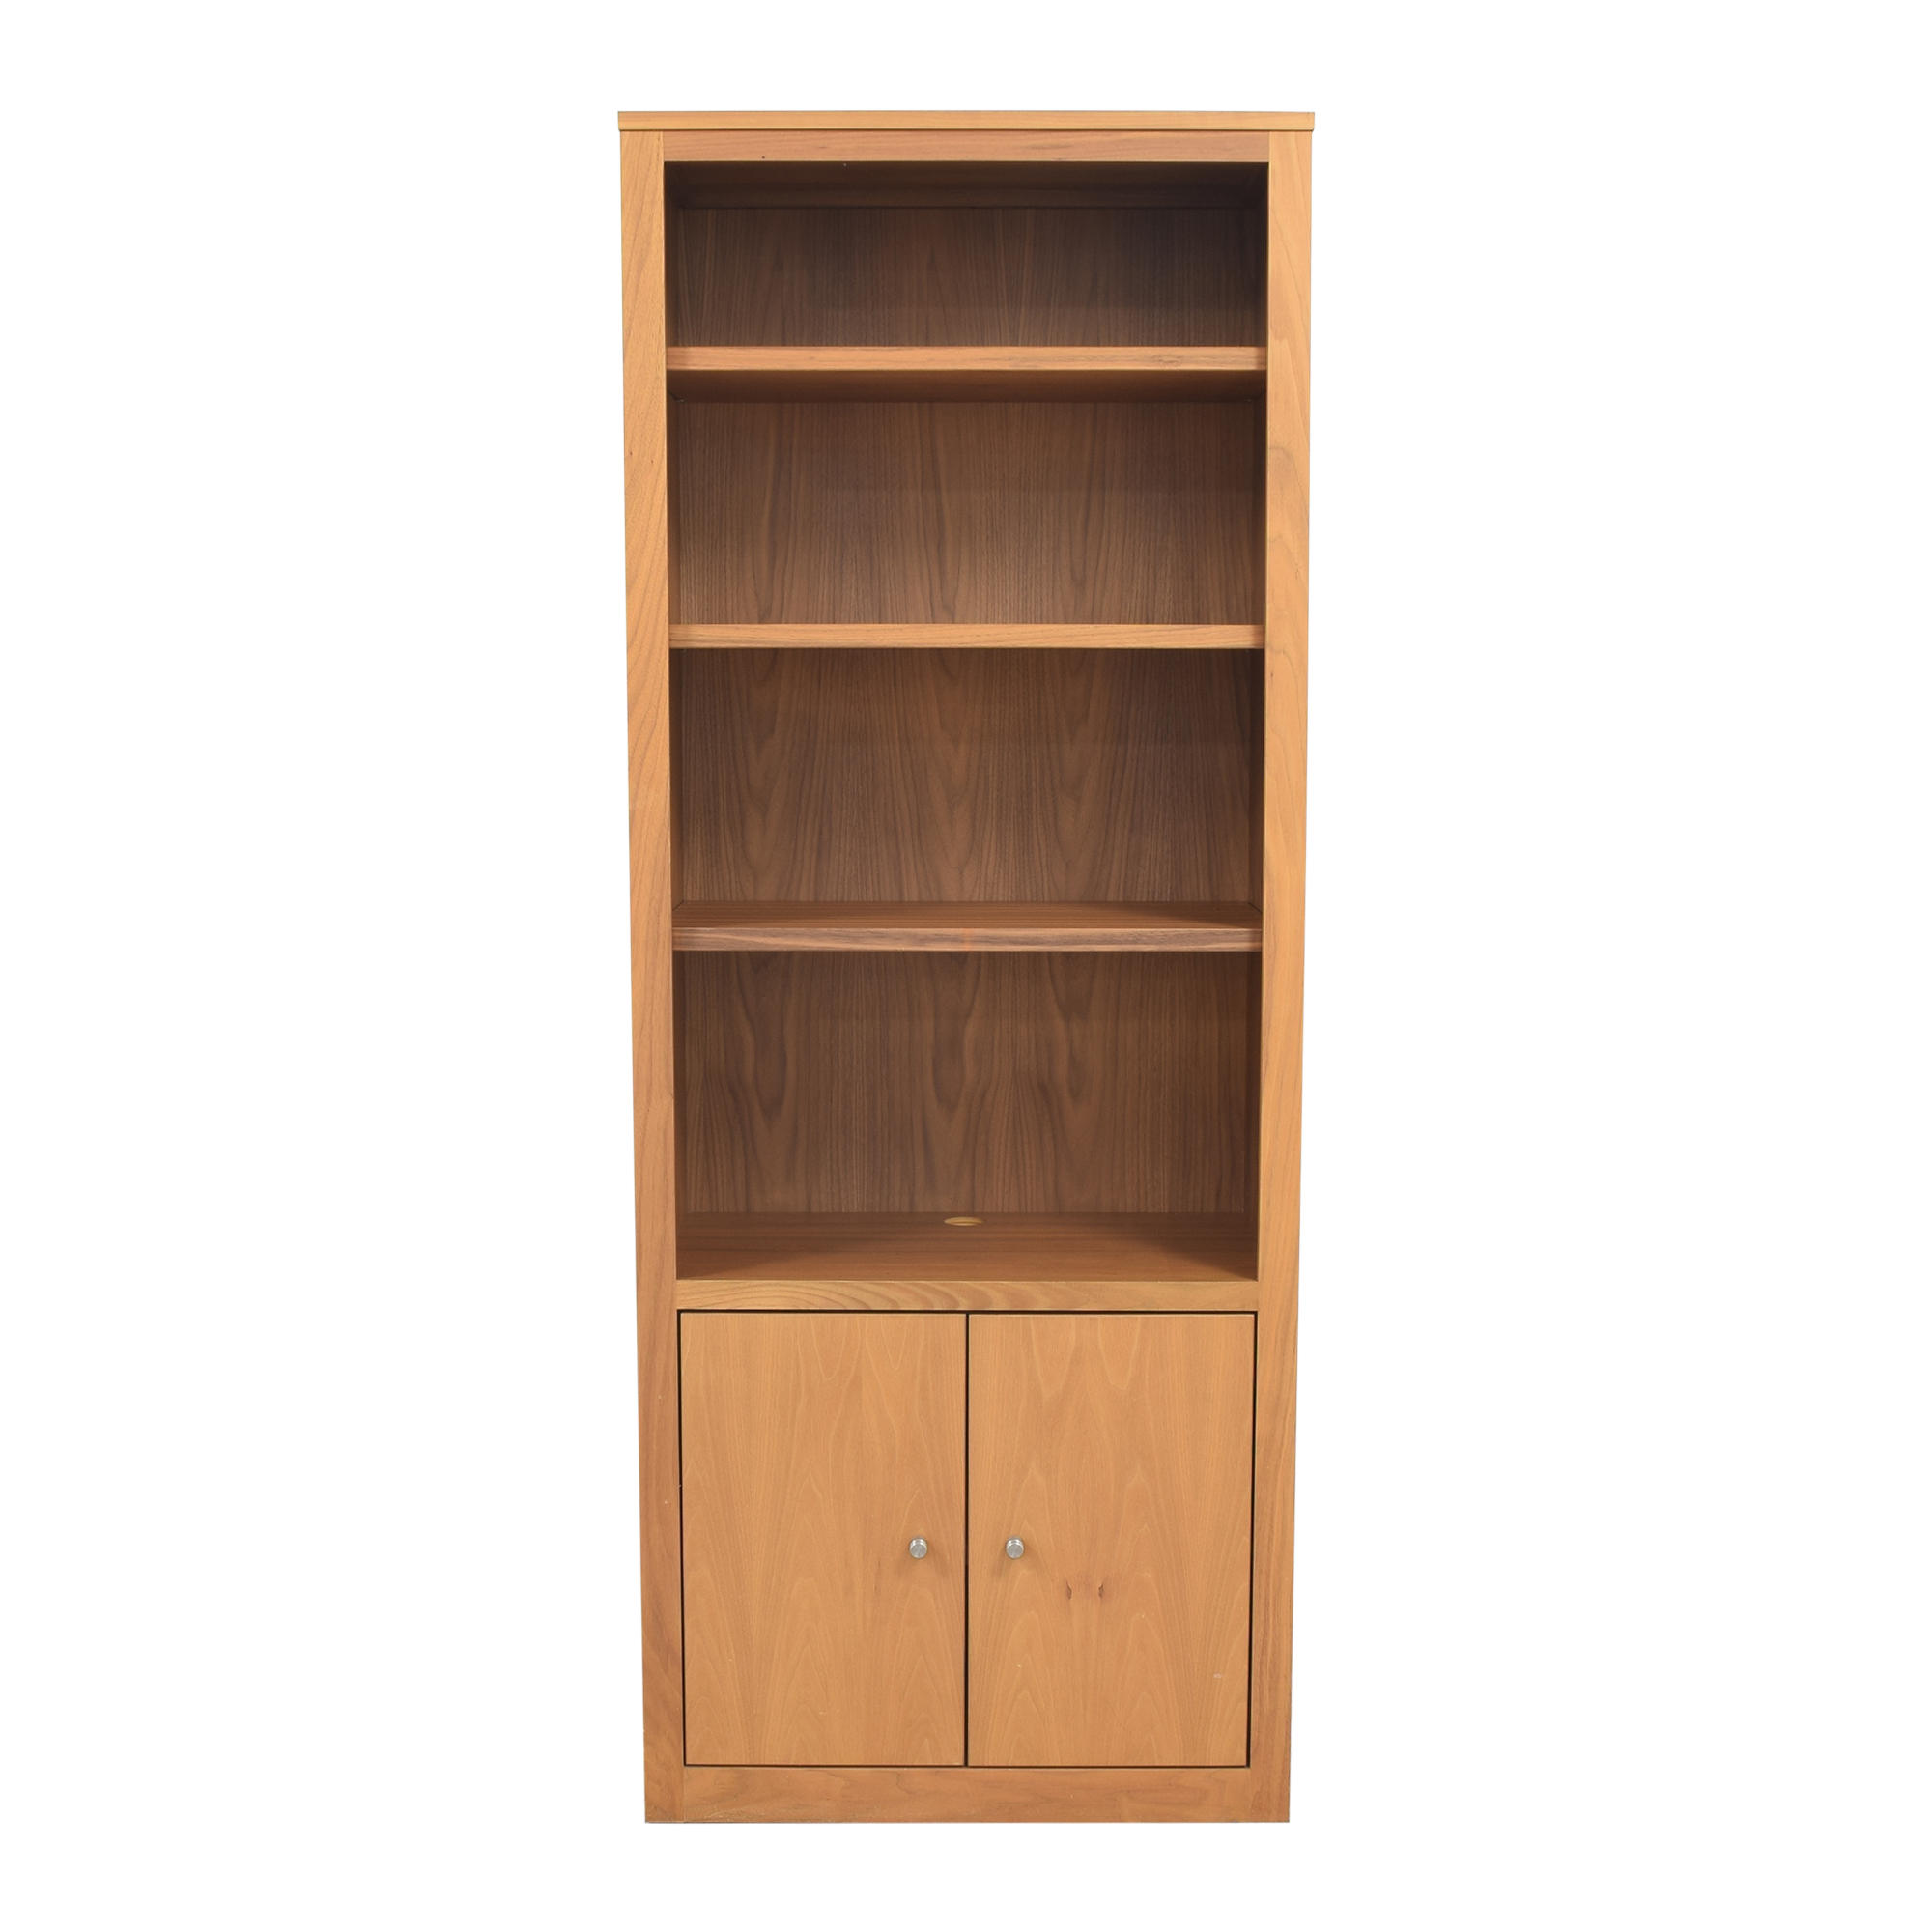 Room & Board Room & Board Woodwind Bookcase coupon